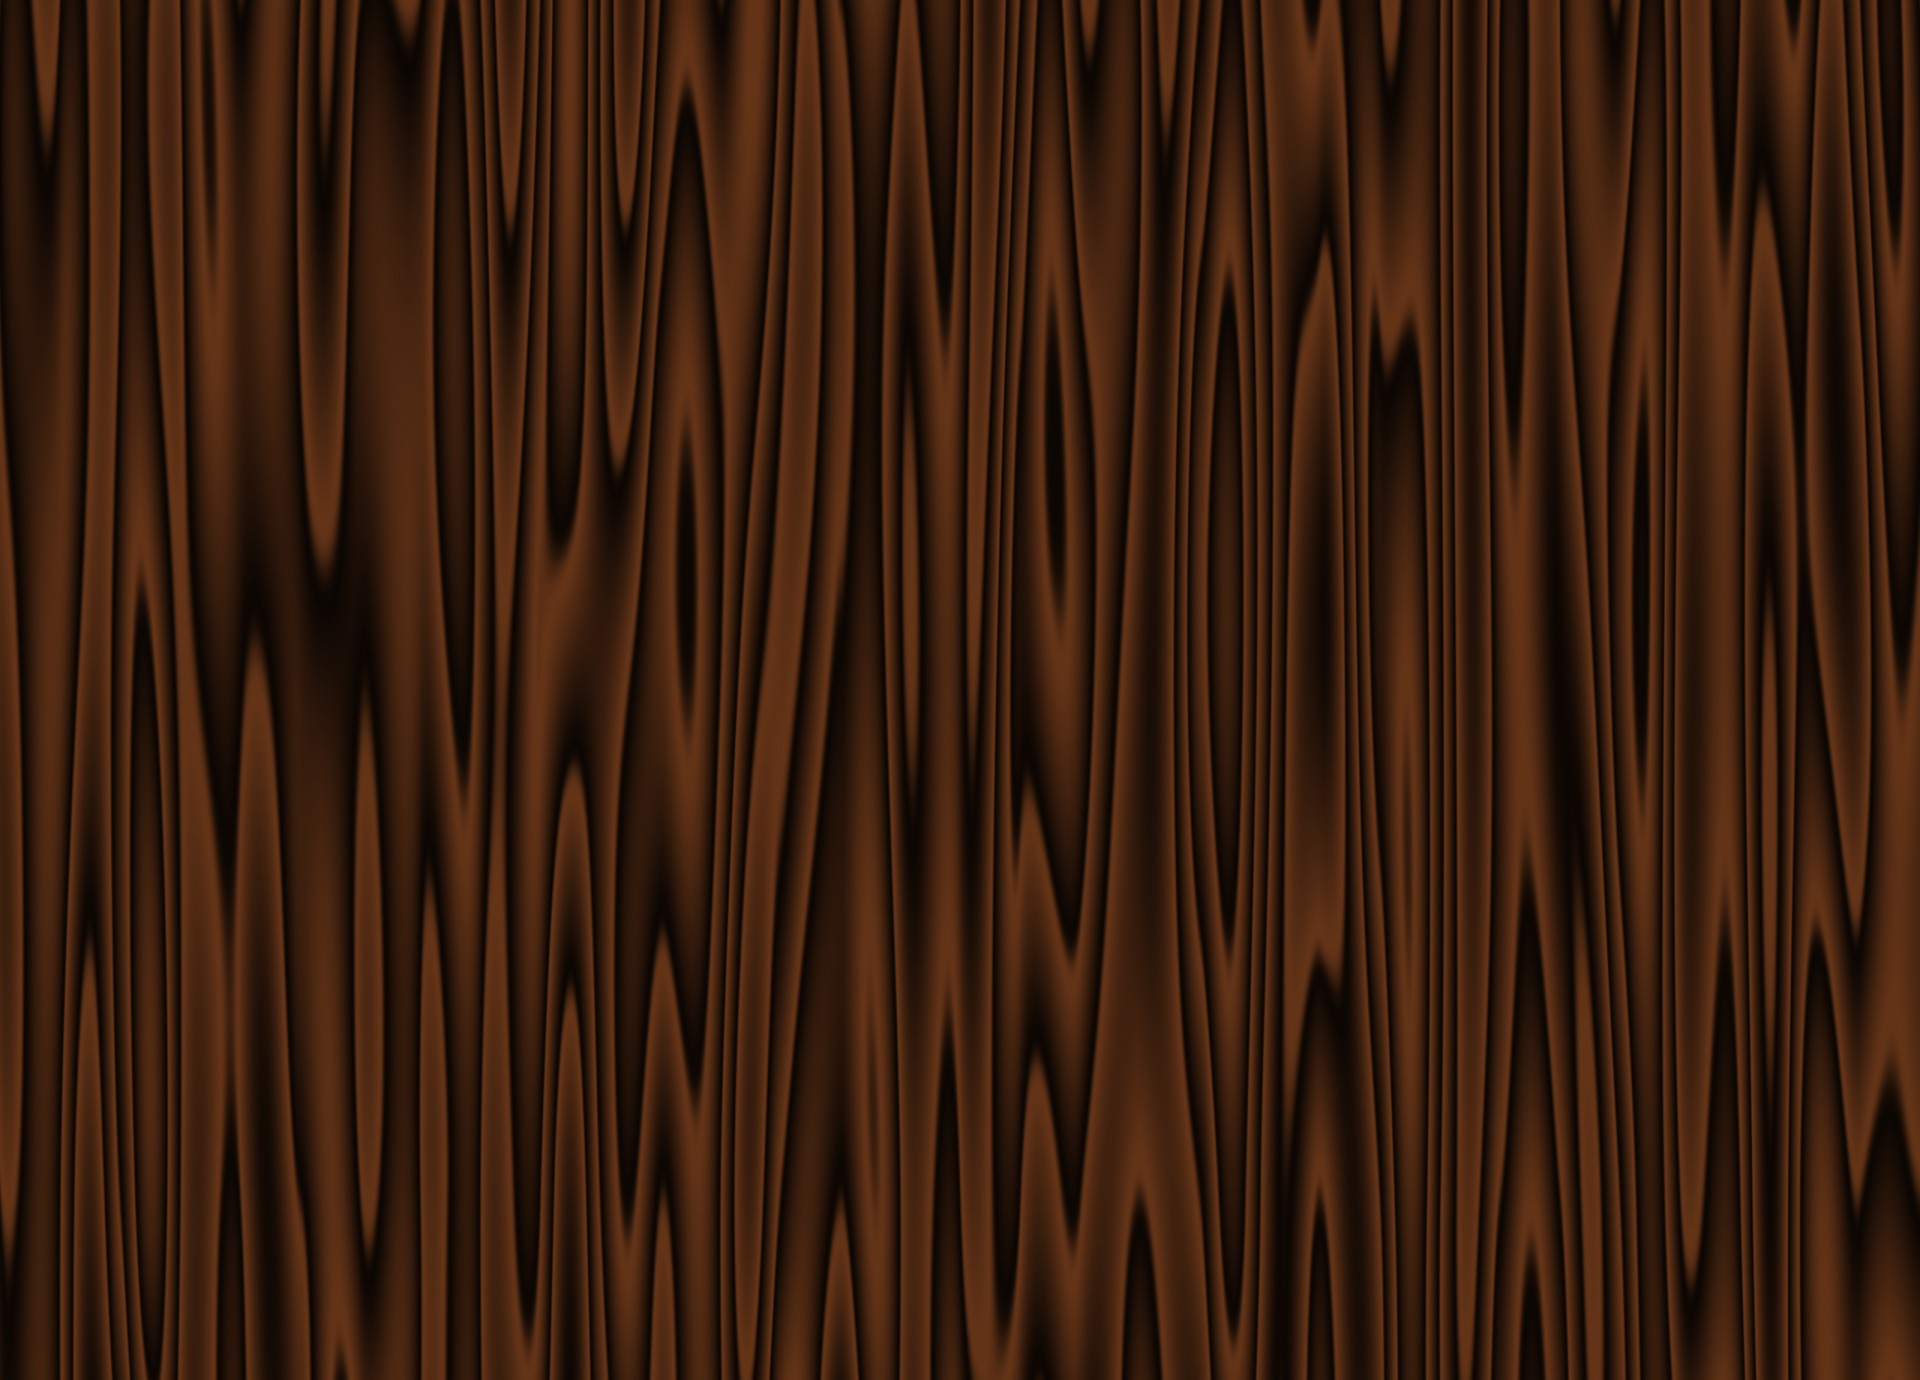 Wood clipart background. Grain effect free stock